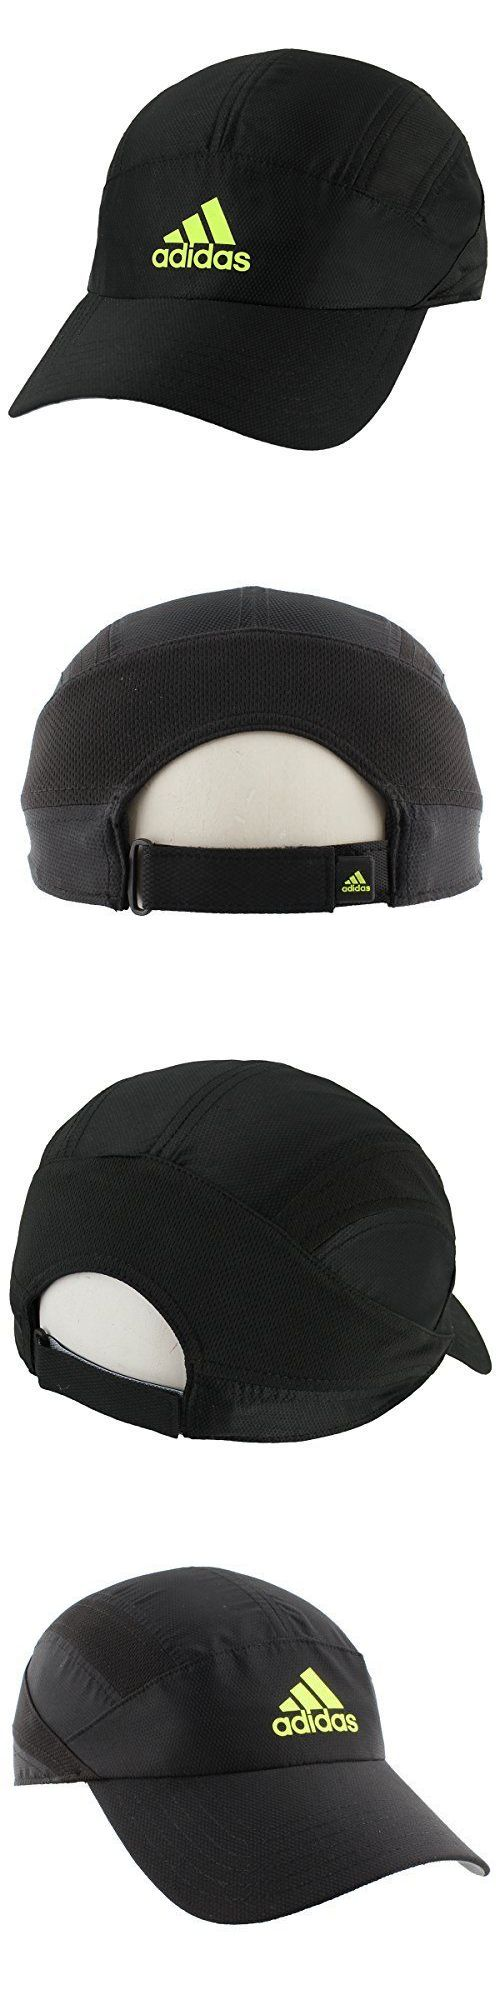 Hats and Headwear 159057: Adidas Mens Circuit Trainer Running Cap Black Solar Yellow One Size, New -> BUY IT NOW ONLY: $126 on eBay!